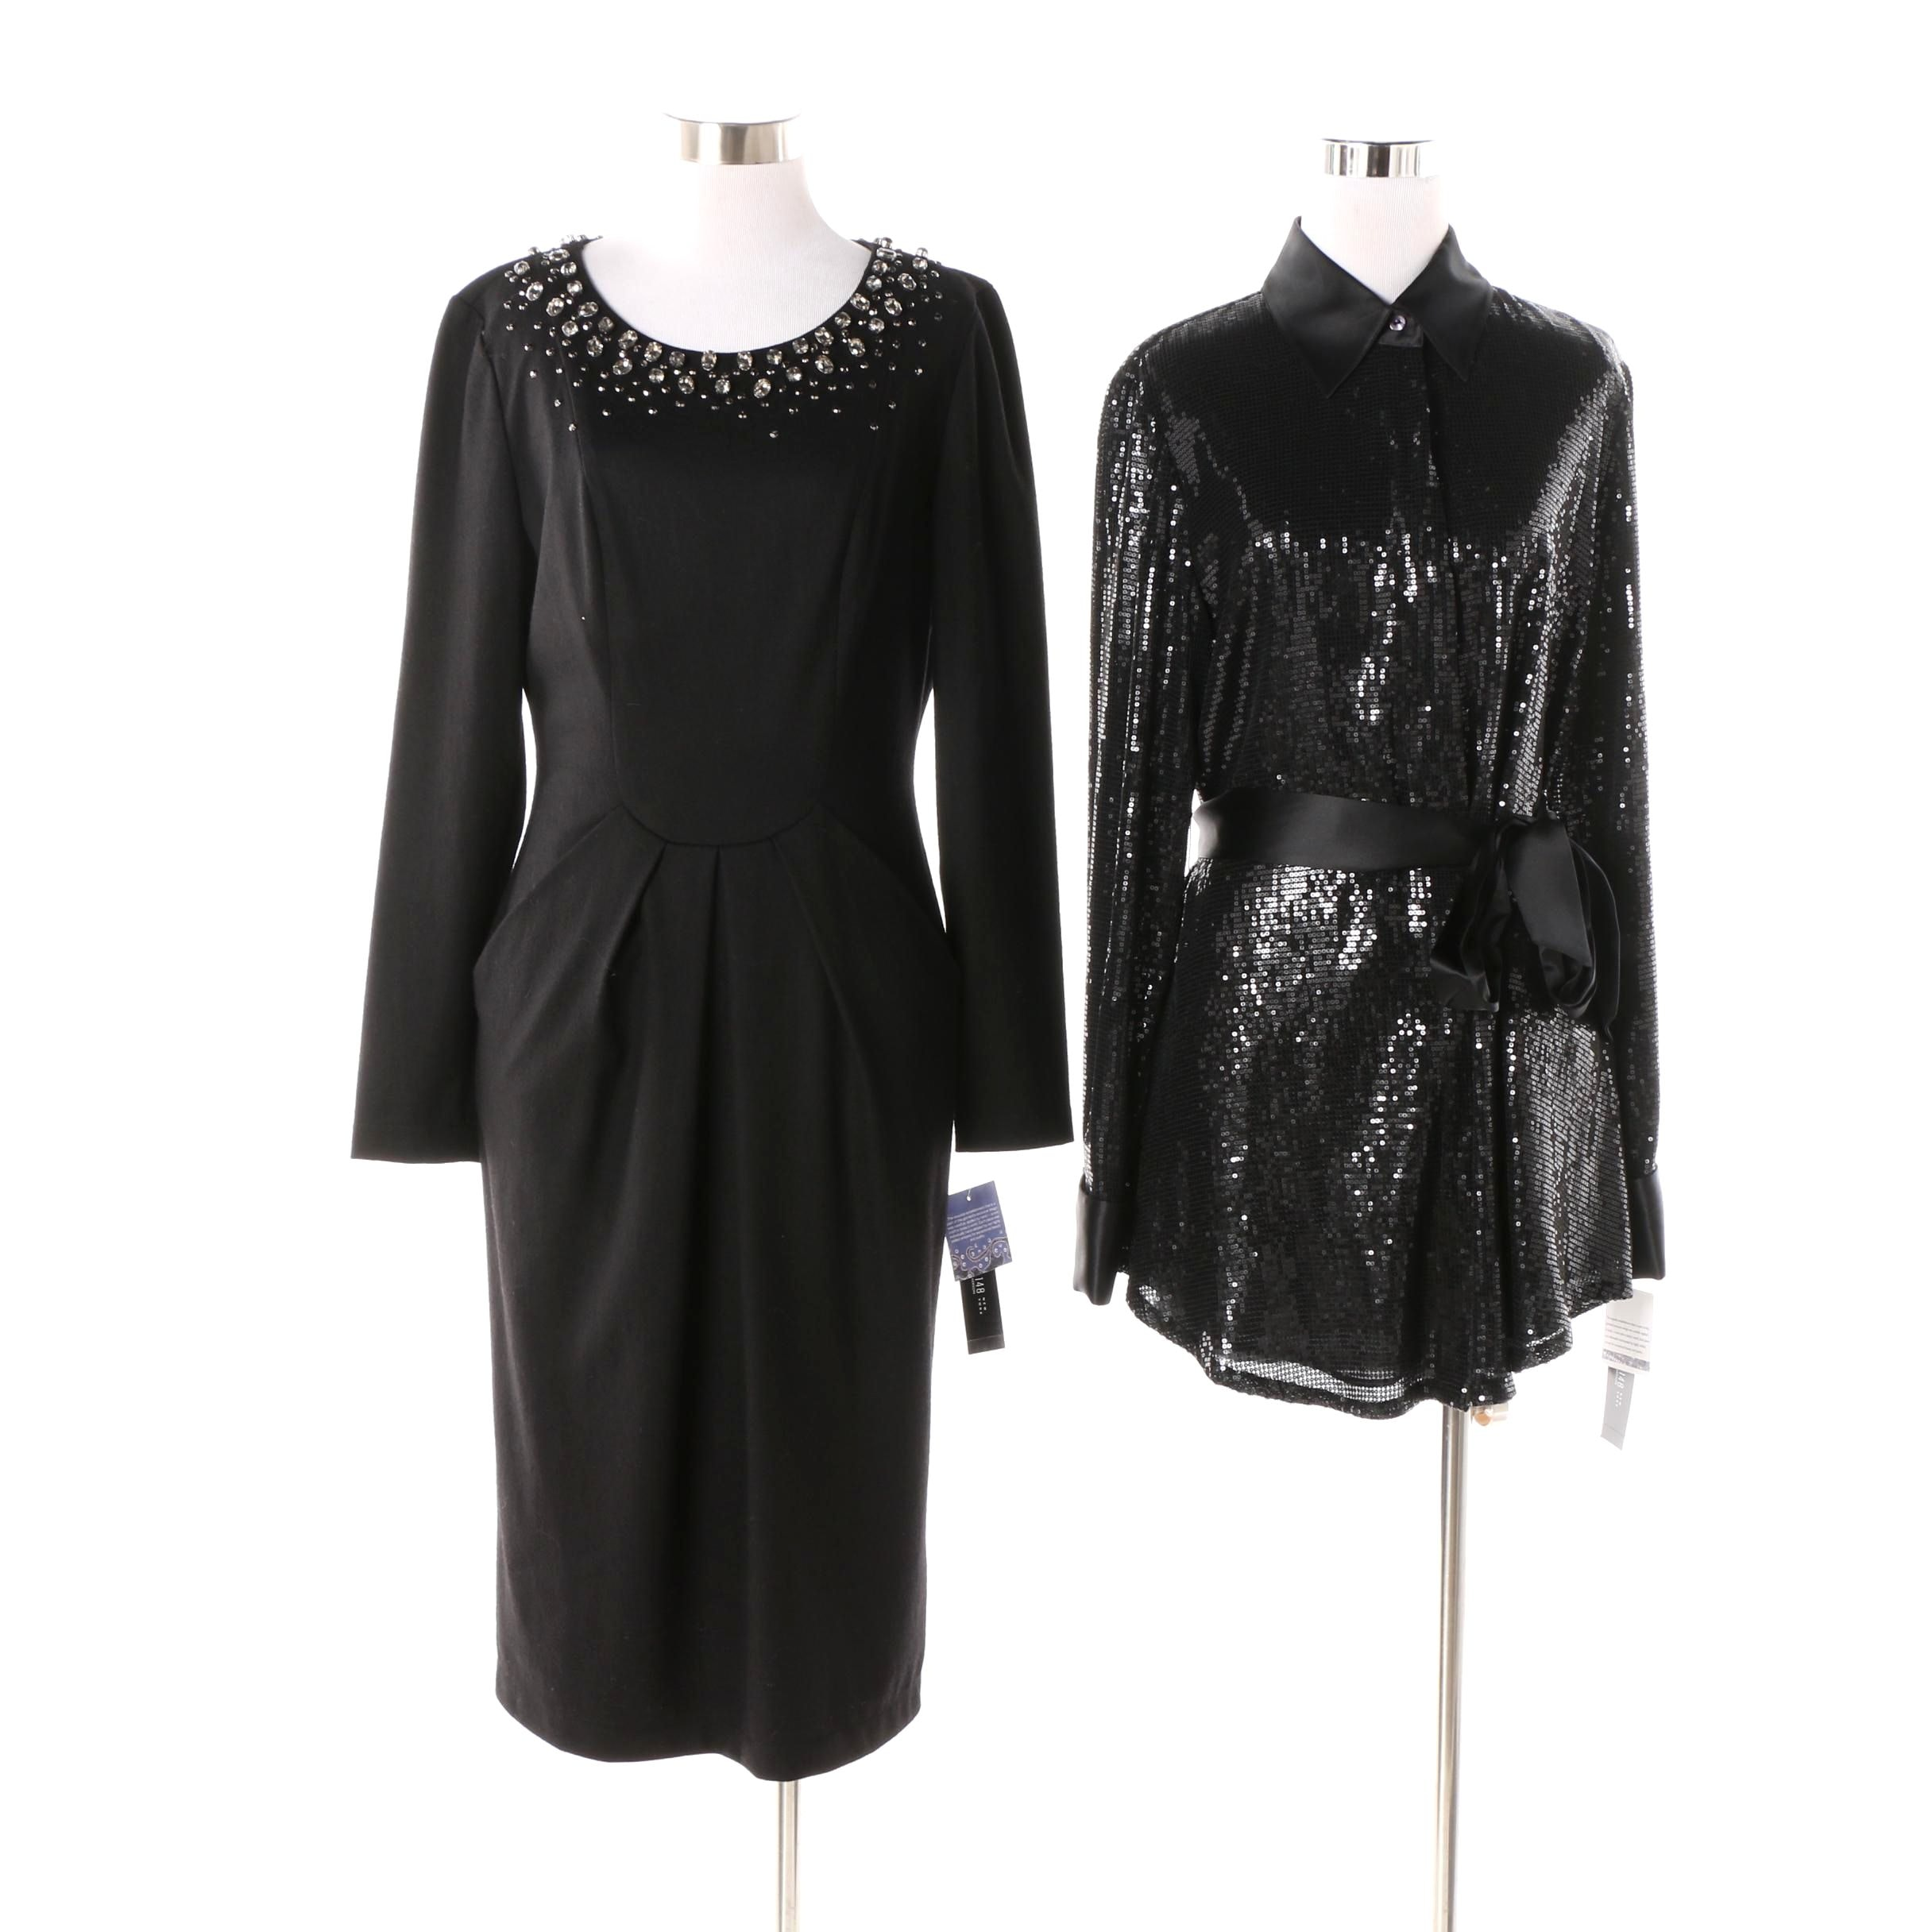 Lafayette 148 New York Embellished Black Dress and Sequined Shirt